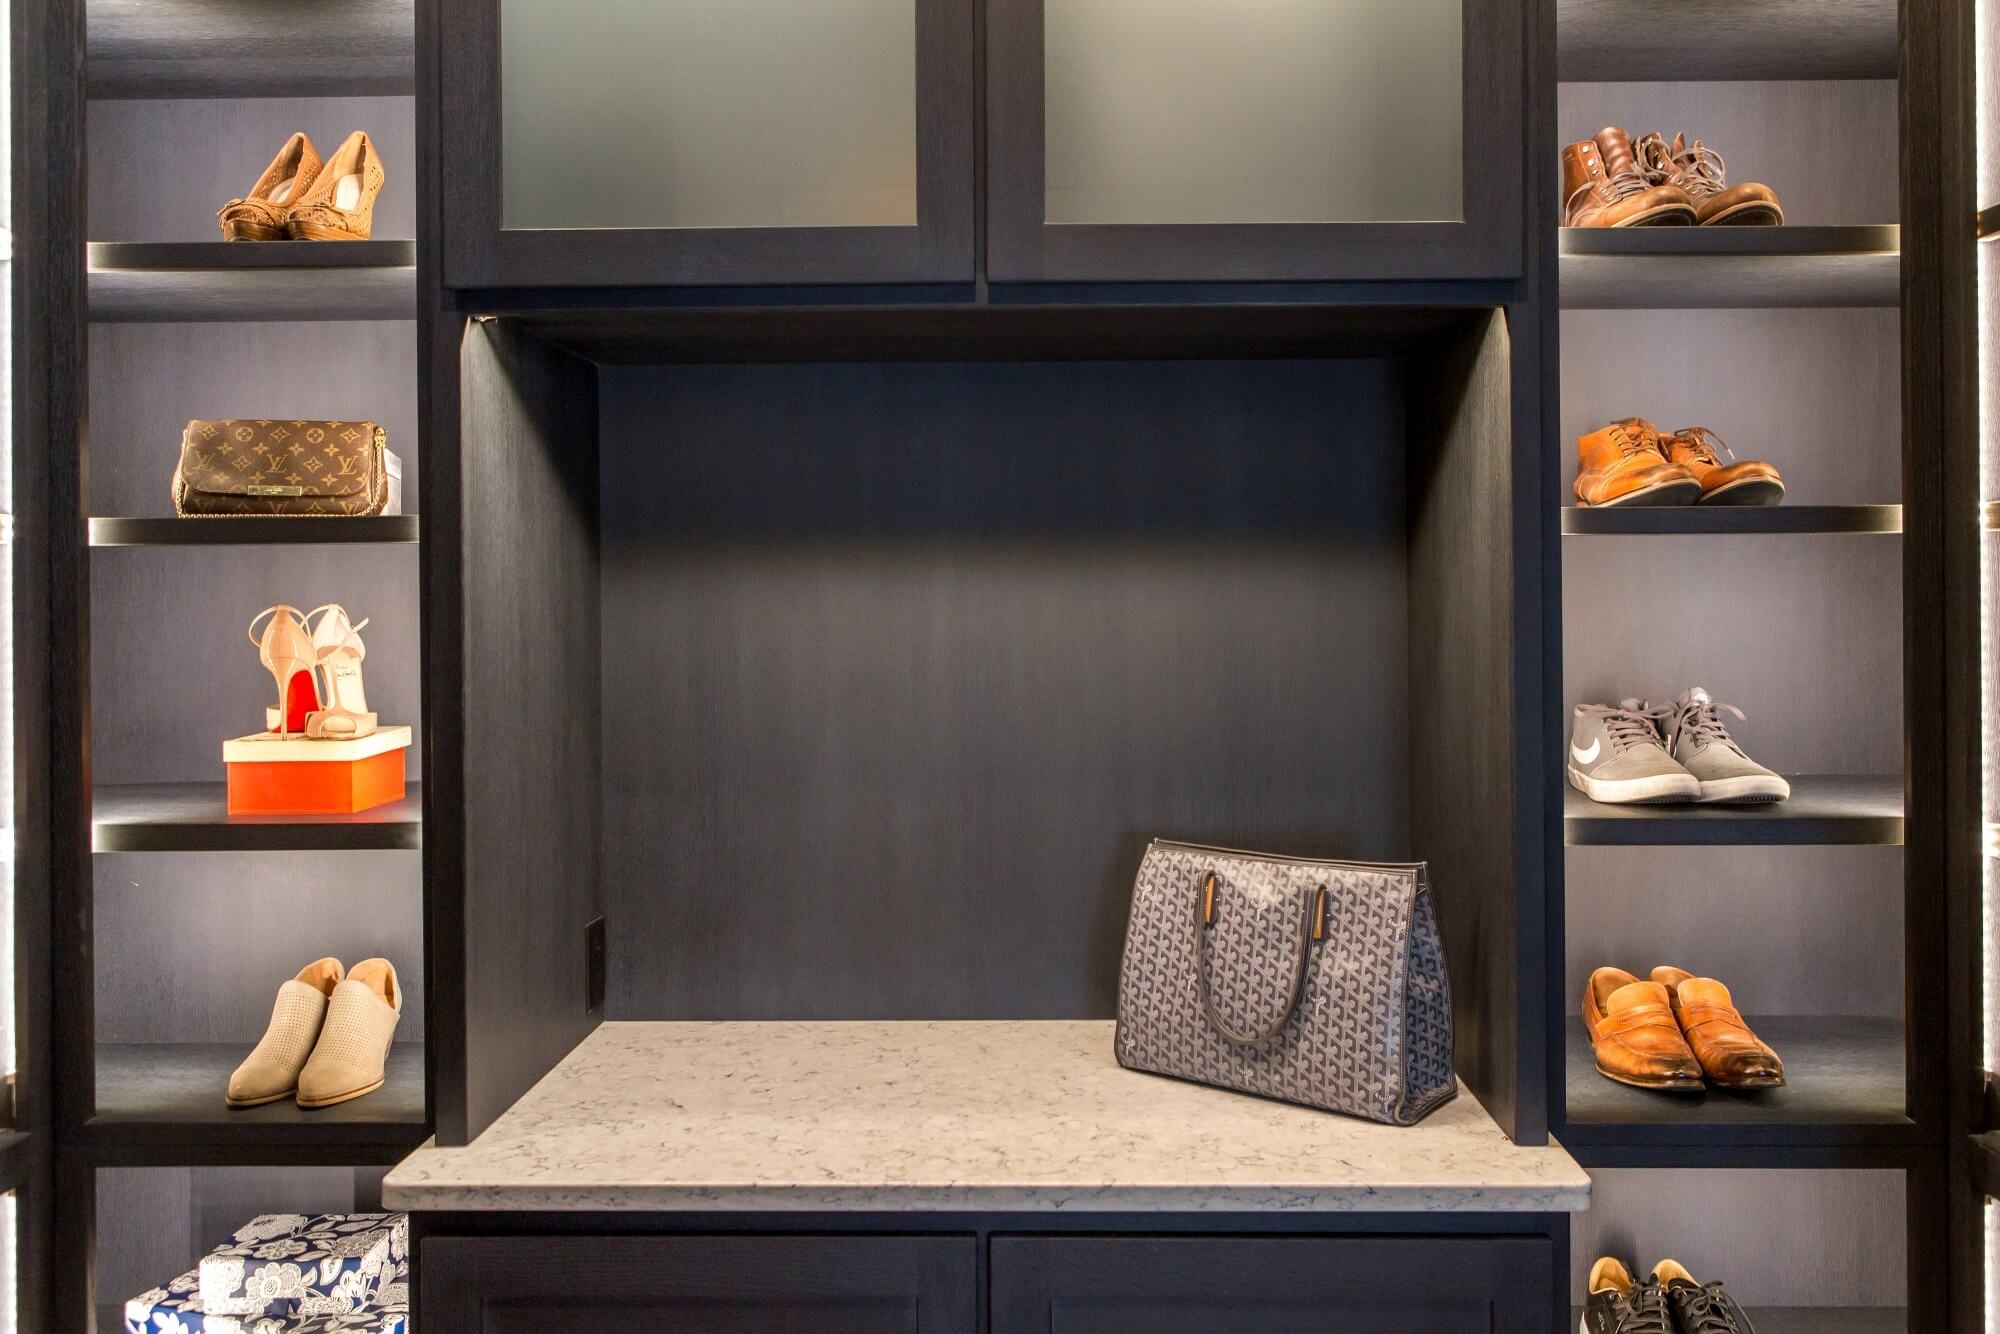 Lighted shoe shelving and accessory counter in a luxury closet.